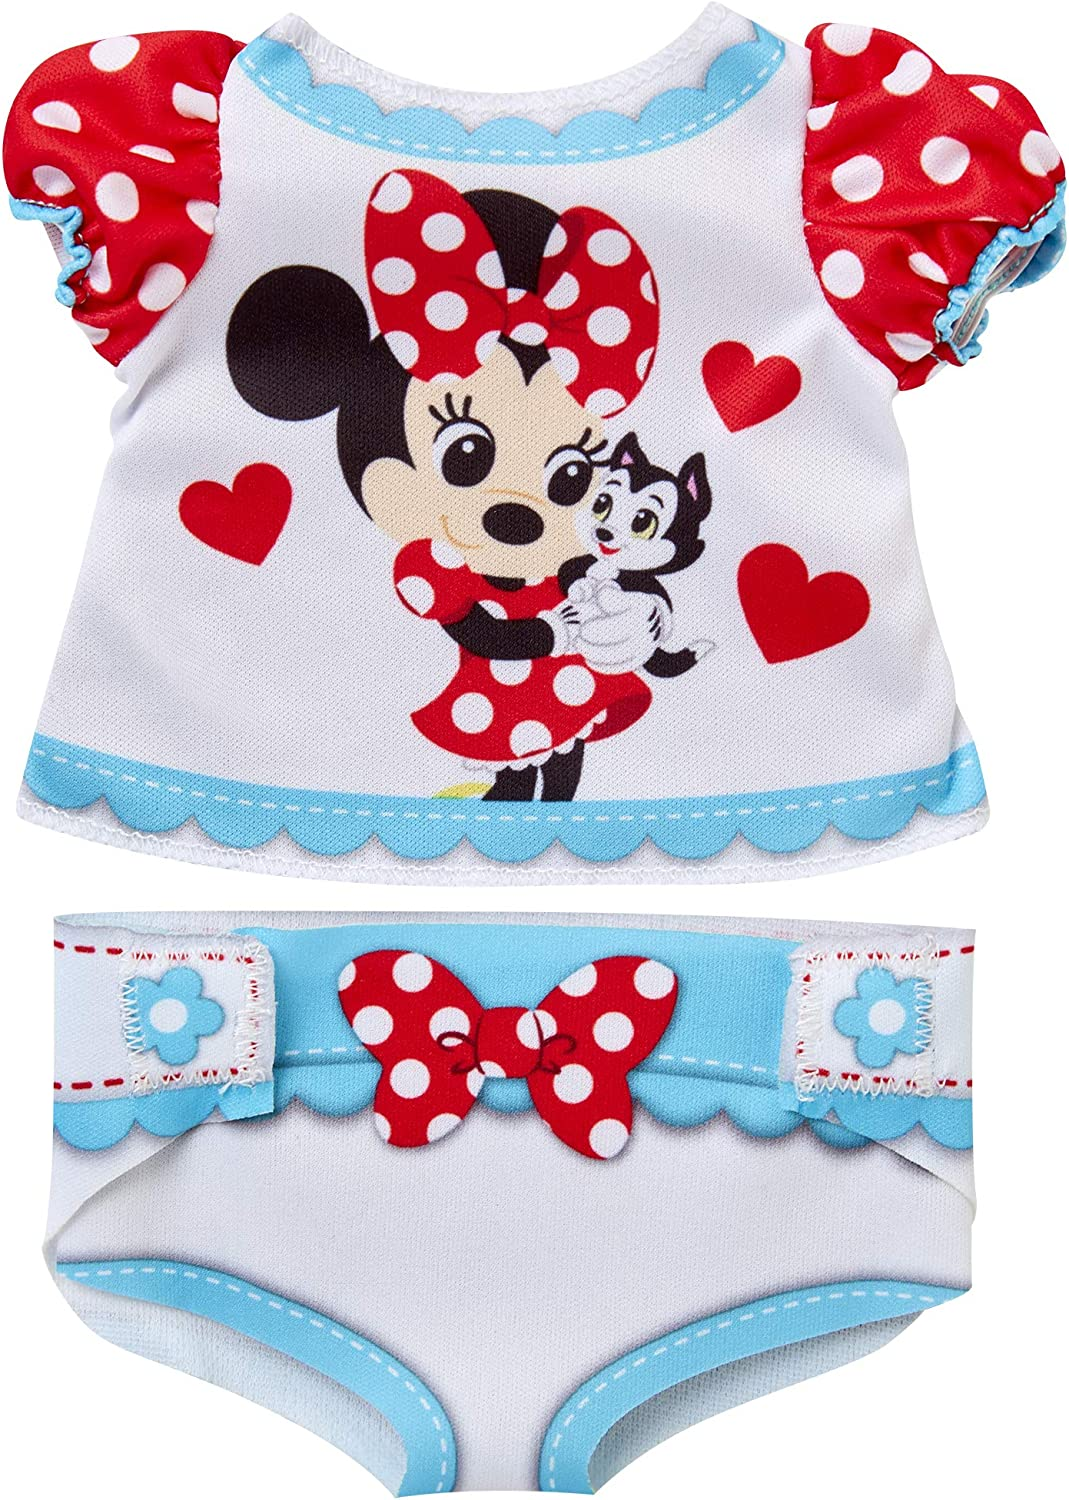 Baby Doll Clothes & Accessories, My Disney Nursery Minnie Diaper Accessory Pack Inspired by Disney's Beloved Minnie Mouse! Includes Doll T-Shirt, Doll diaper Cover, Clip With Charm